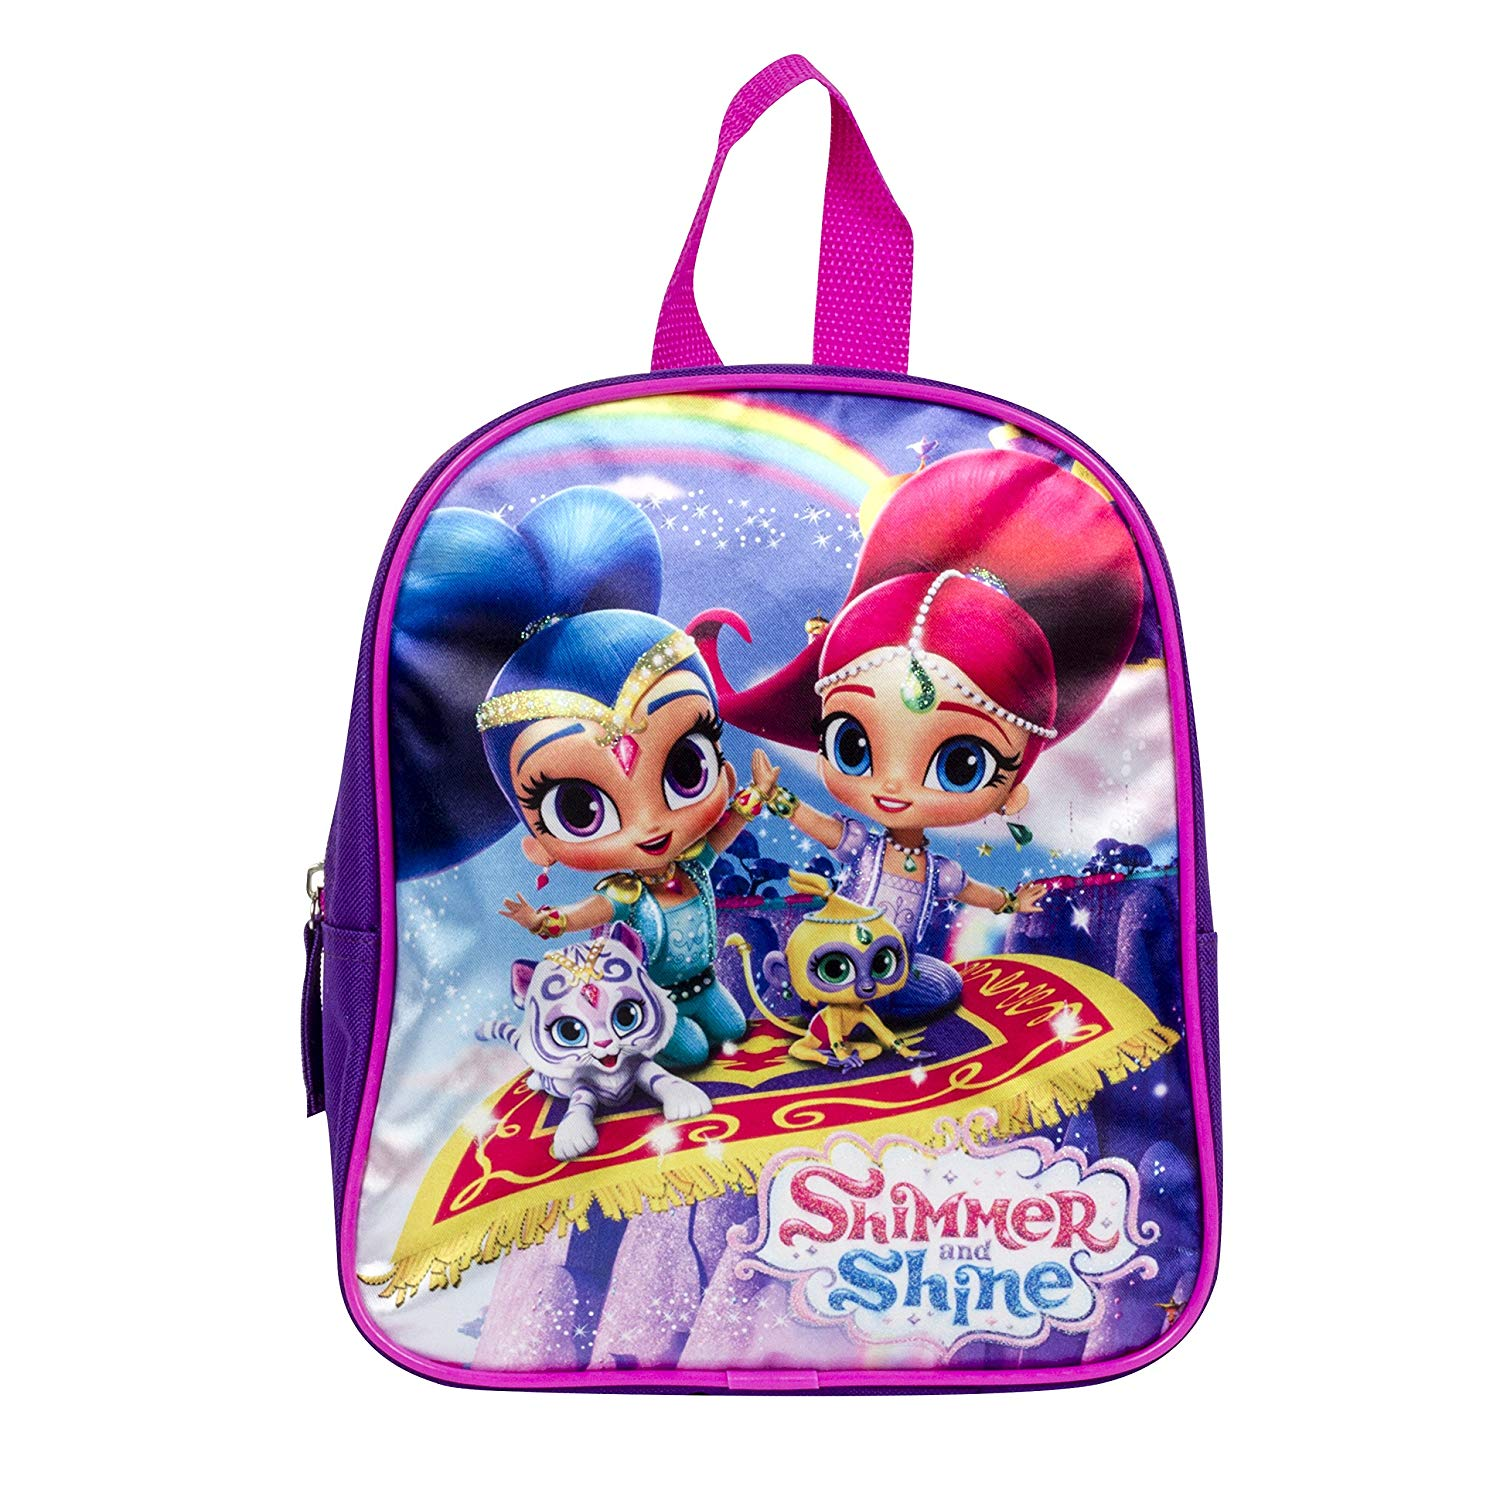 c255f7f86d69 Get Quotations · Girls Nickelodeon Shimmer and Shine Dome Purple Backpack 12  inch Bag